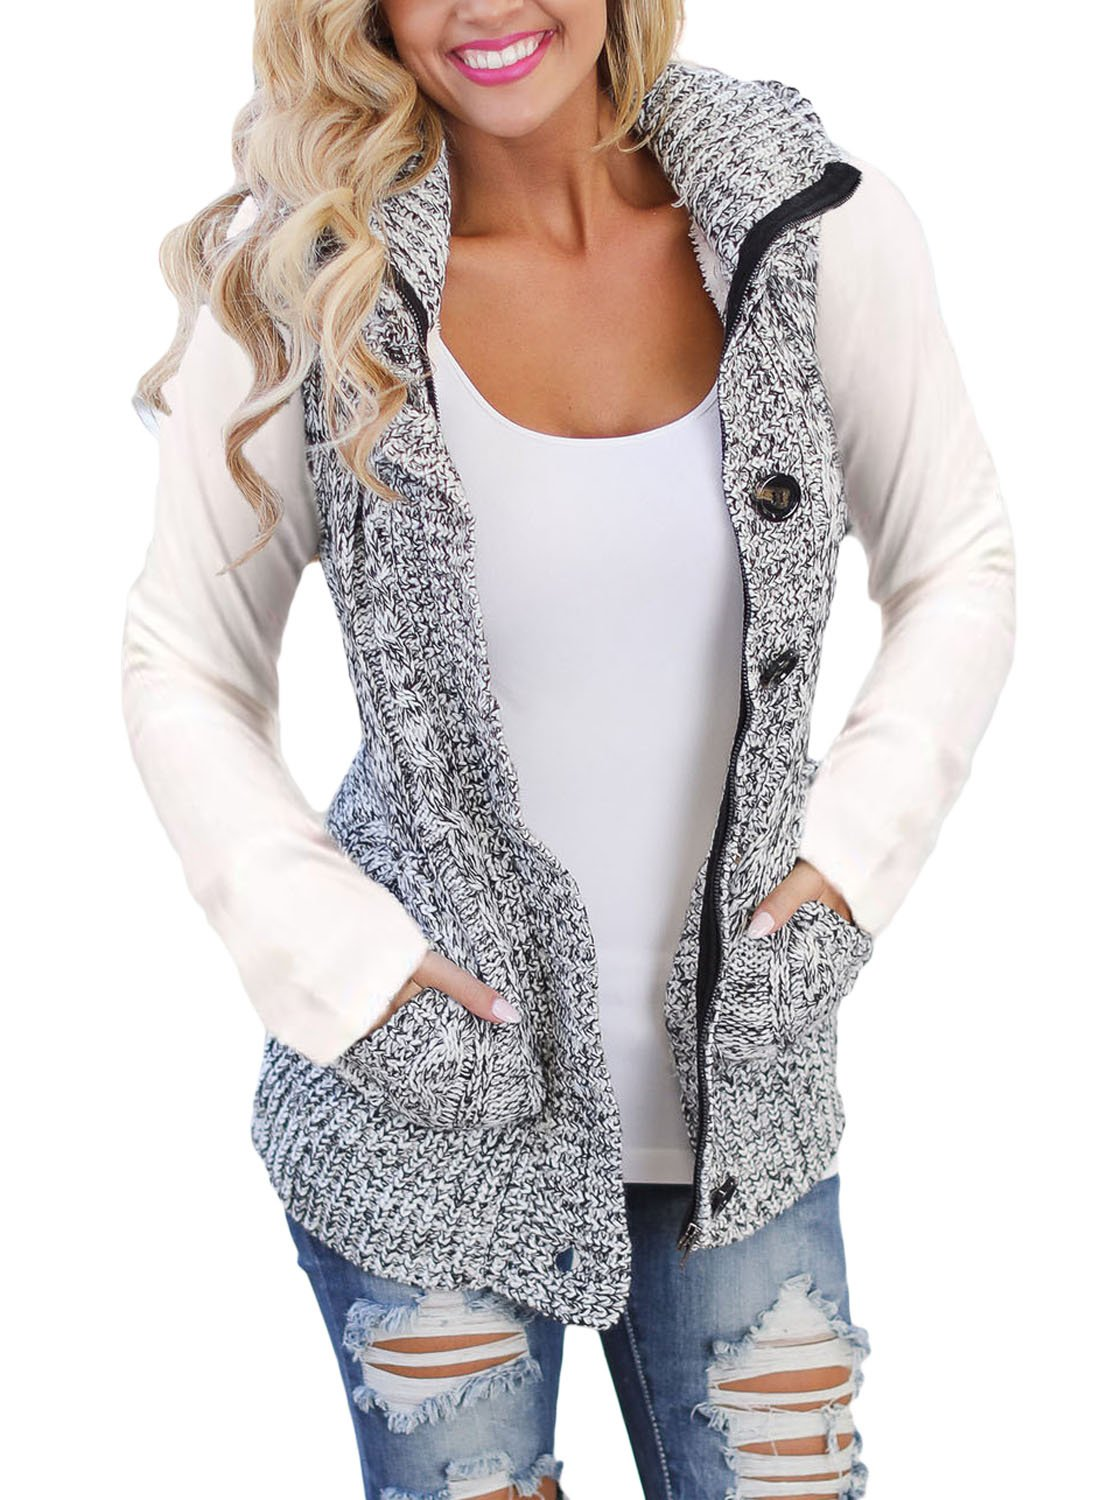 Ebbizt Womens 2018 Fashion Thin Fall Winther Hooded Gilet Jacket Knitted Button Up Cardigan Fleece Sweater Vest Coat Grey Black Small